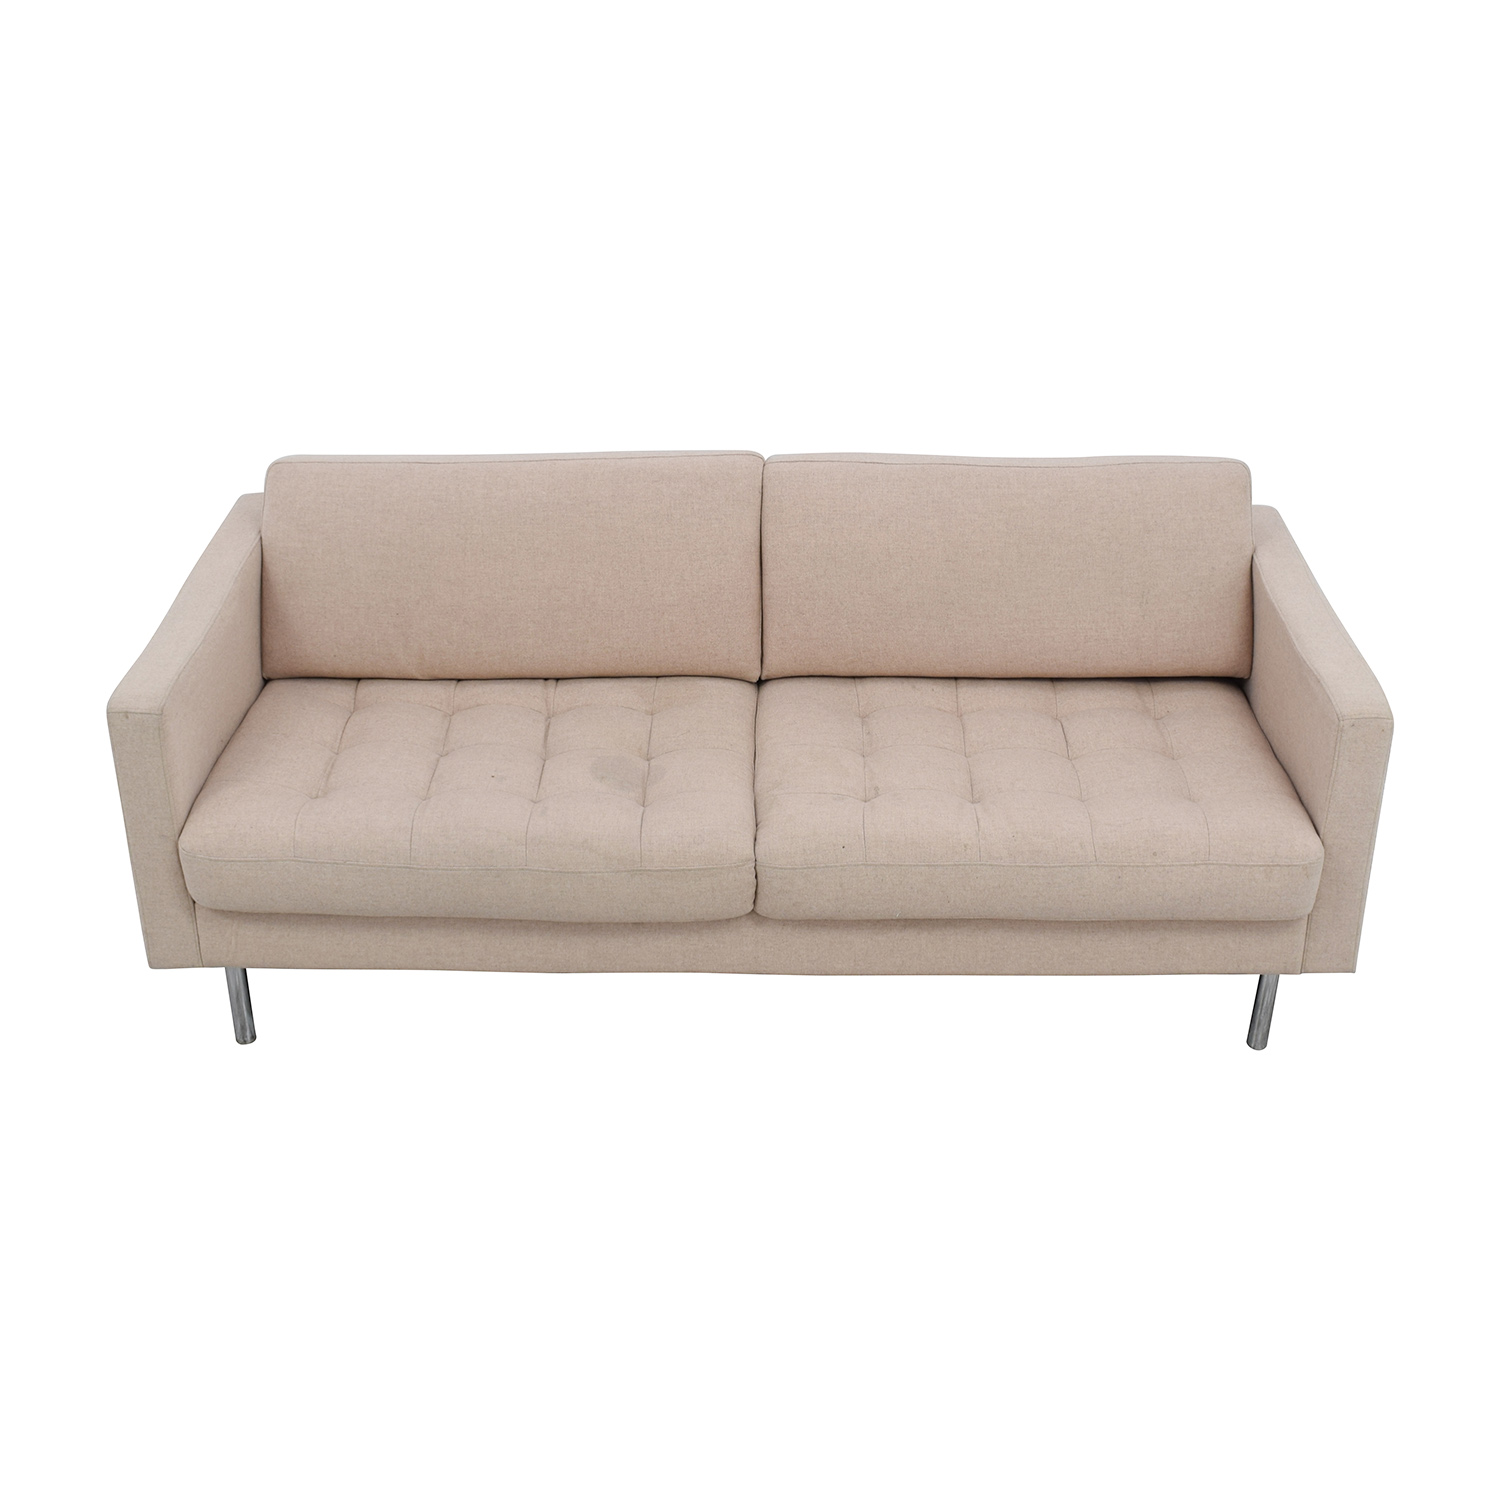 BoConcept BoConcept Carmo Sand Two Tufted Cushion Sofa Sofas